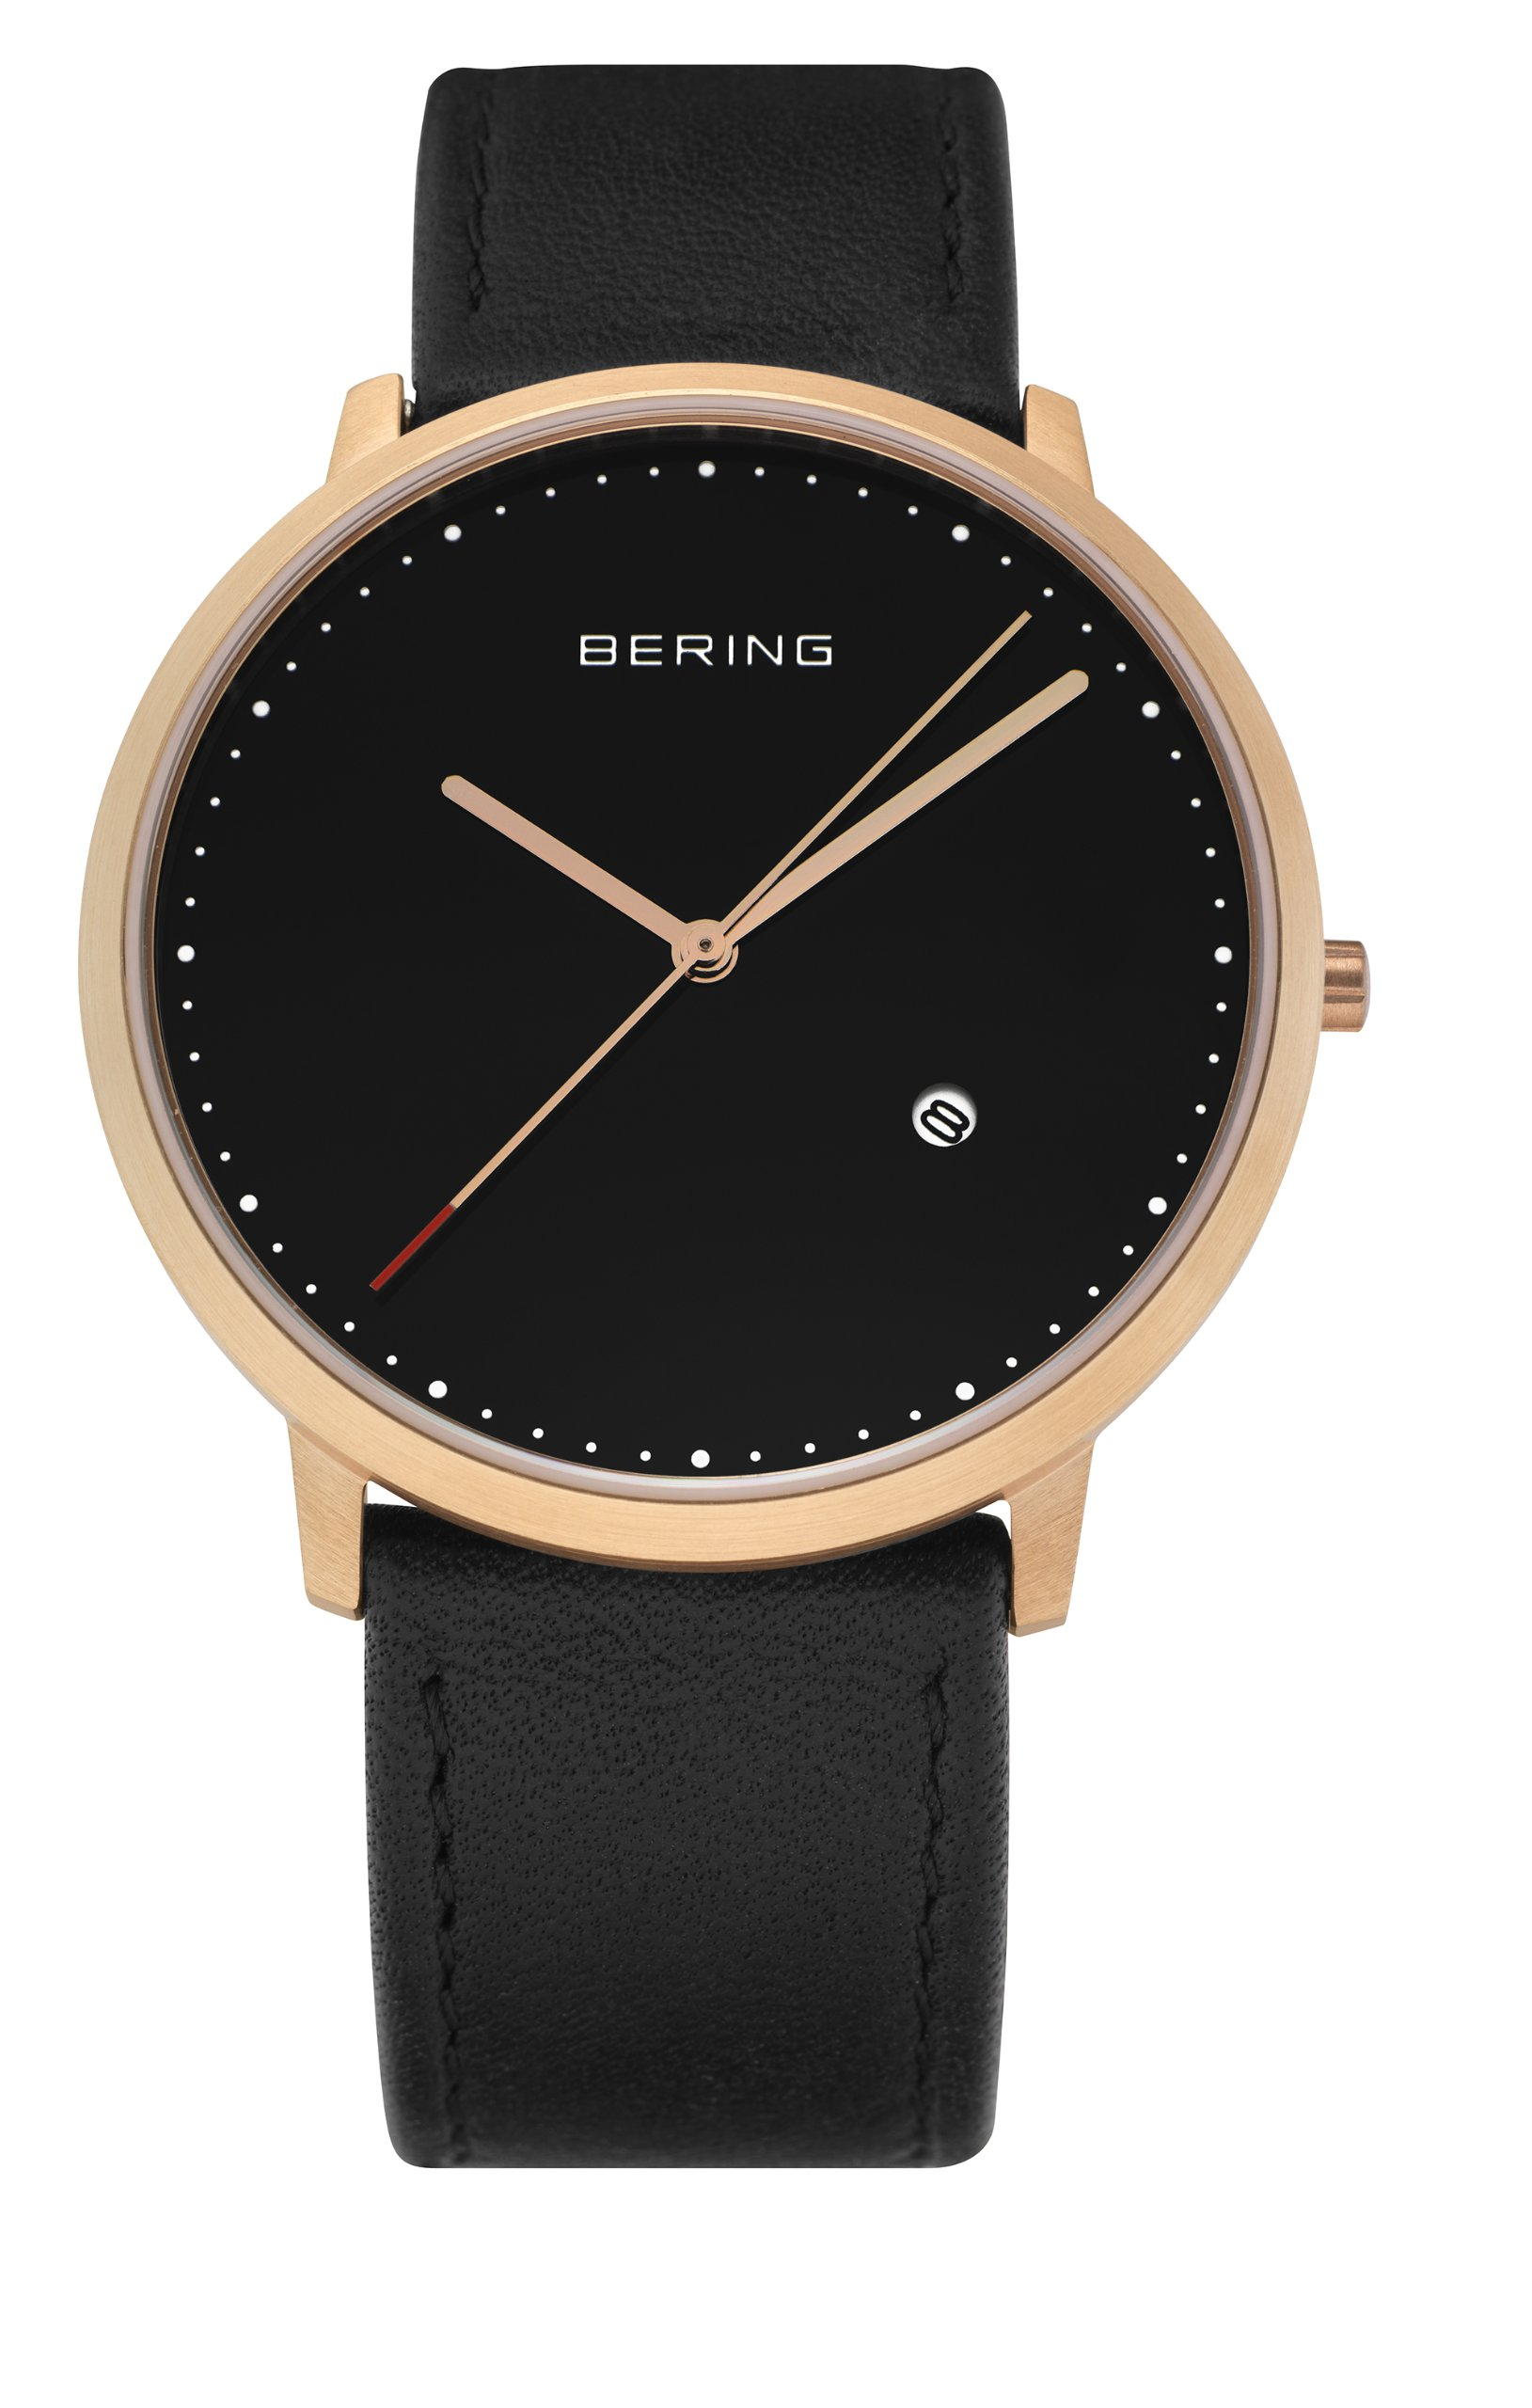 BERING Time 11139-462 Classic Collection Watch with Calfskin Band and scratch resistant sapphire crystal. Designed in Denmark. by Bering (Image #2)